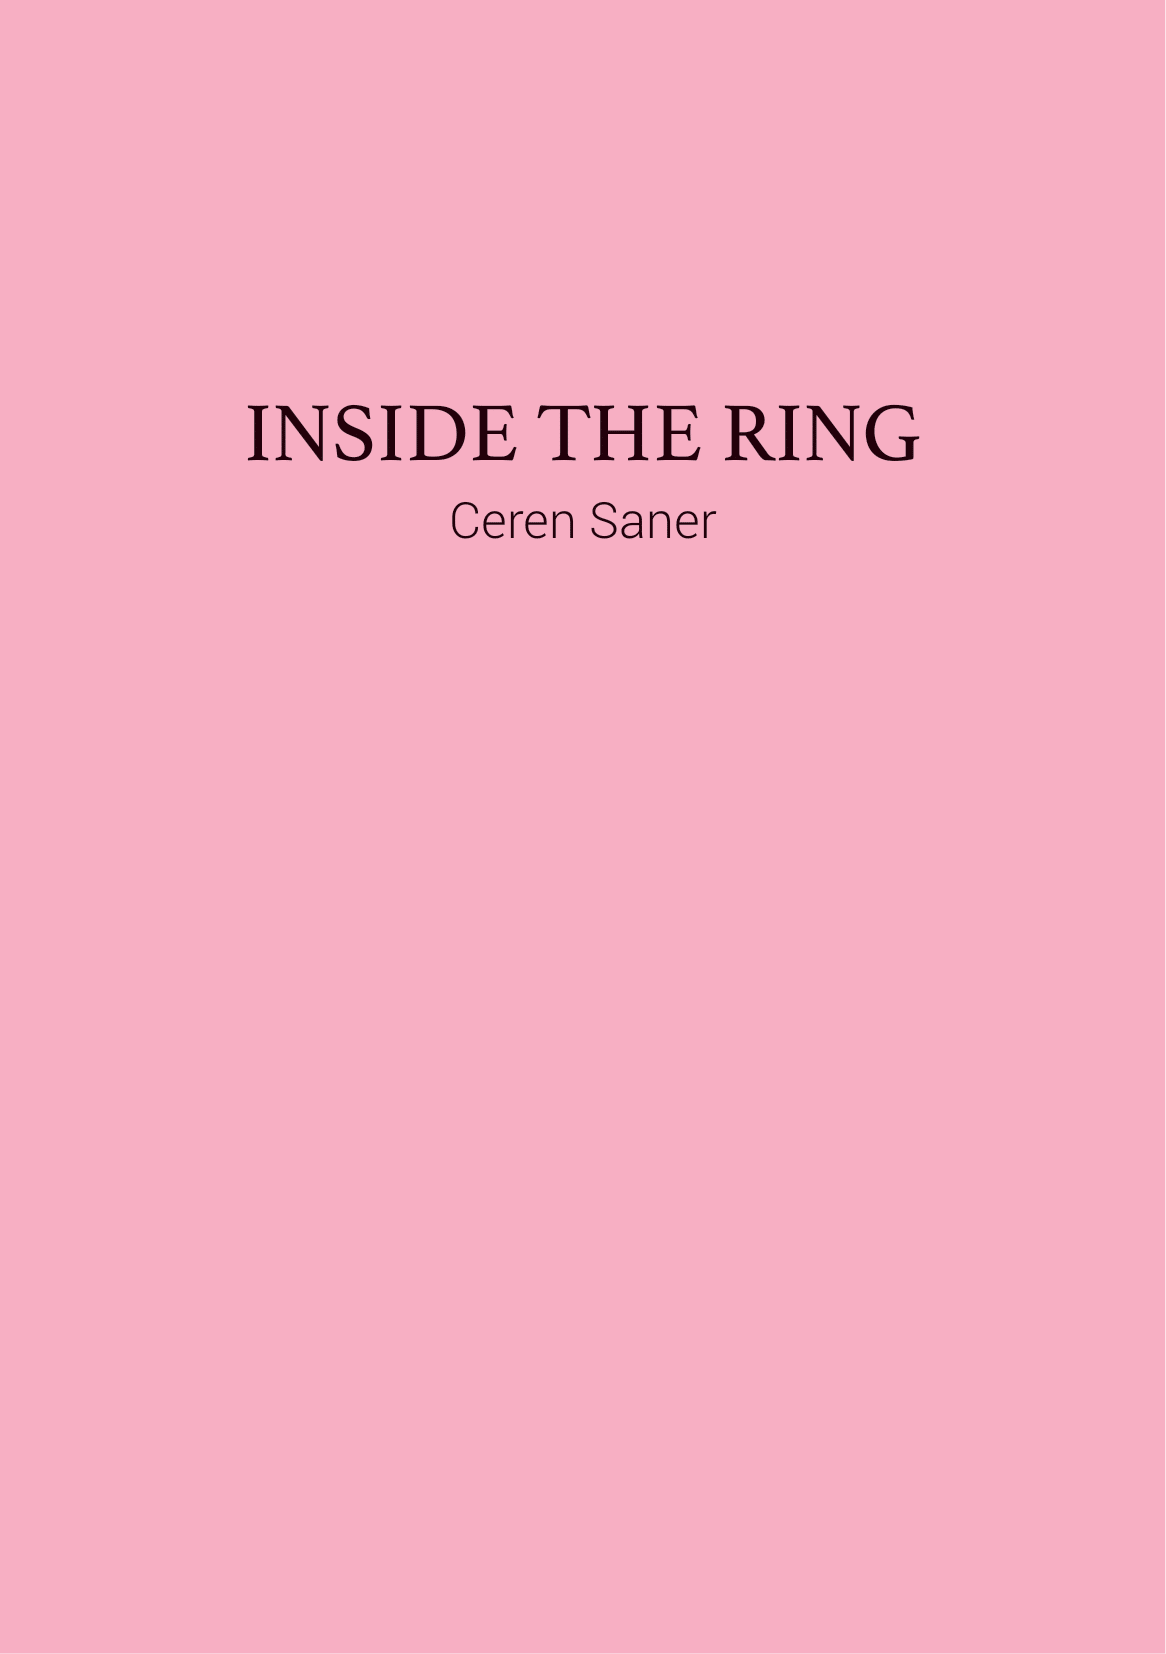 INSIDETHERING_bookpreview-01